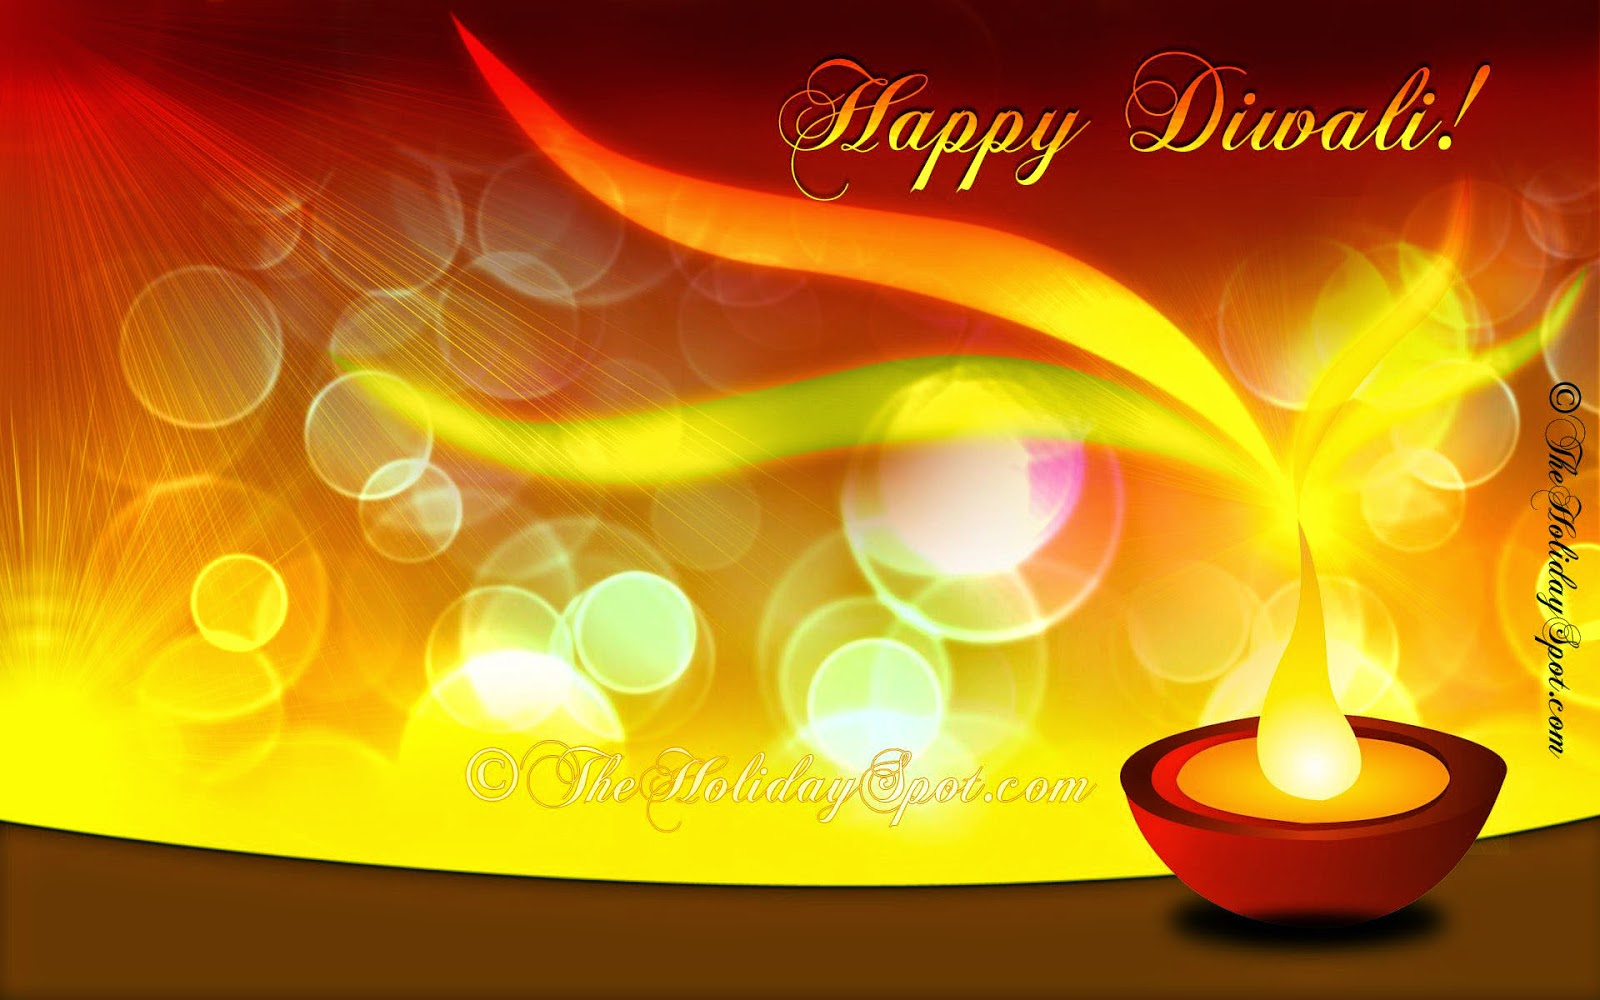 Diwali wishes greetings images choice image greeting card examples fabulous diwali greeting card designs and backgrounds best choice tag diwali greeting cards diwali greetings card kristyandbryce Gallery